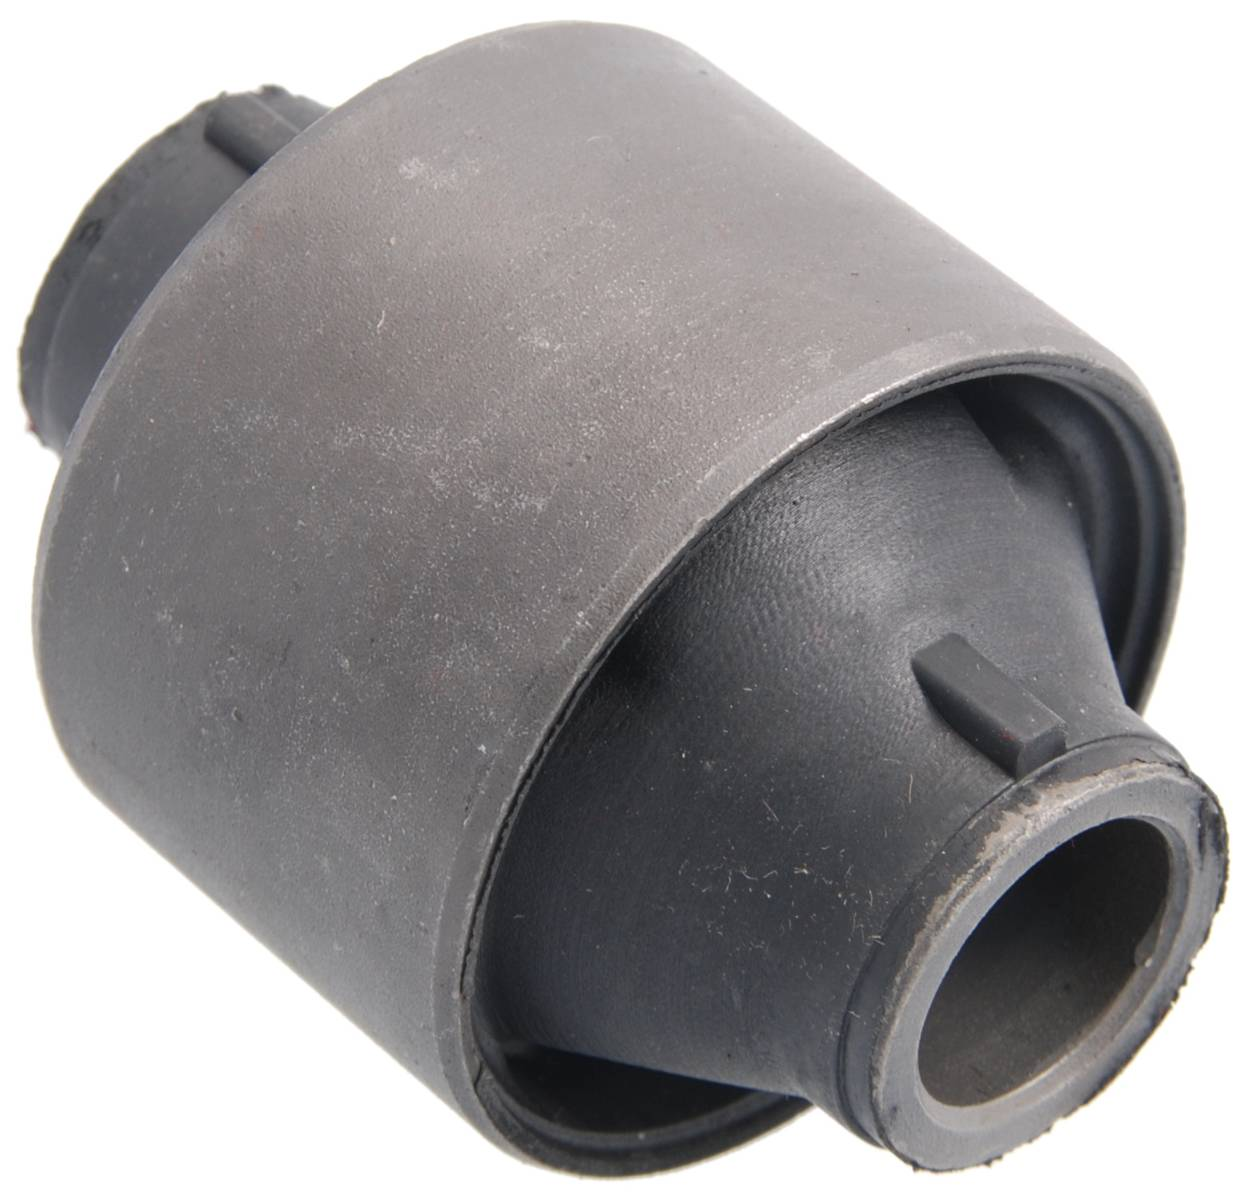 Febest 2005 Nissan 350Z - Torsion Bar Bushing FEBEST # NAB-090 OEM # 54468-CD001 at Sears.com